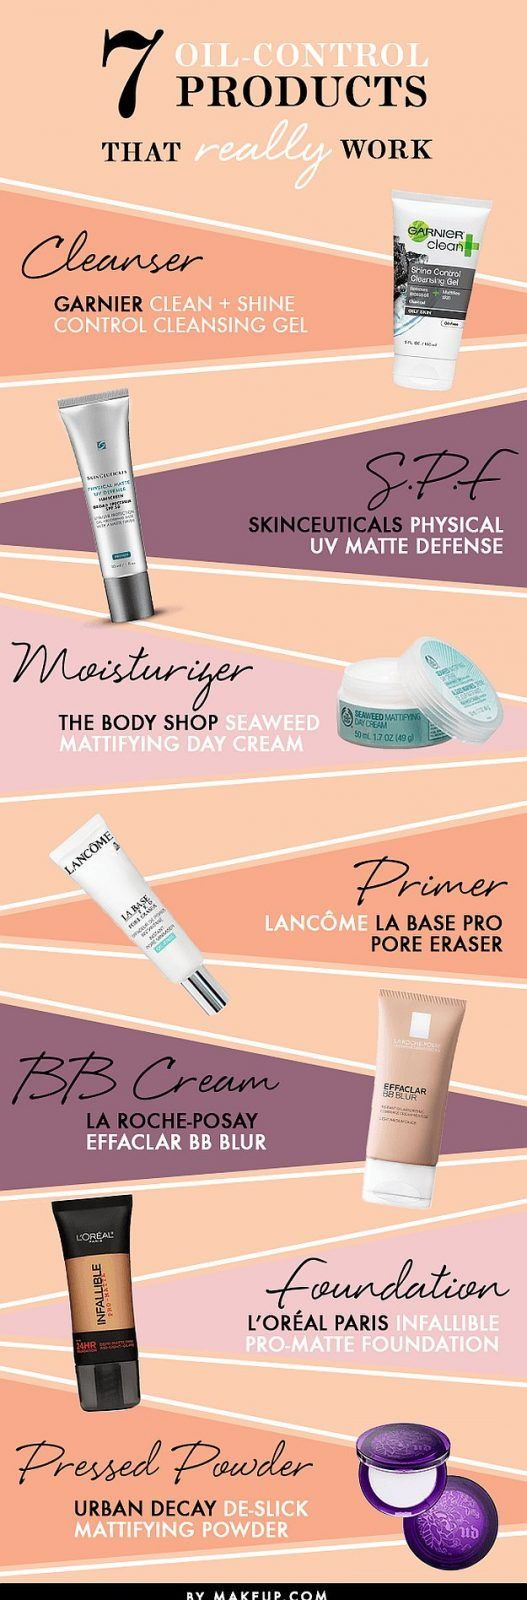 best face images on pinterest beauty tips beauty products and